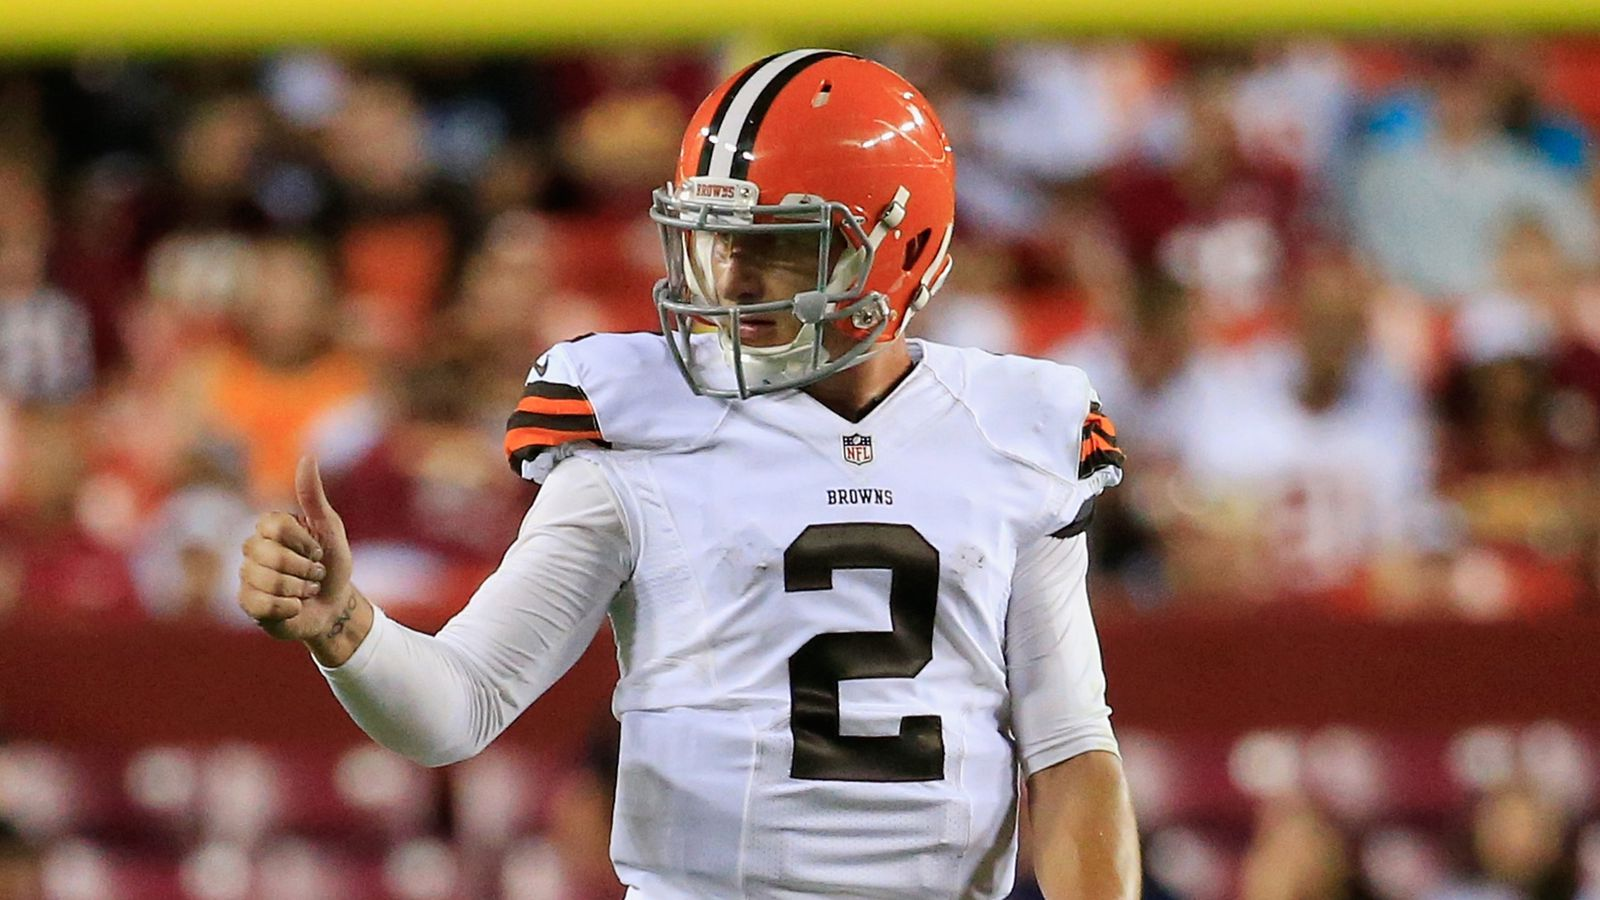 'This isn't college anymore' prompted Johnny Manziel's